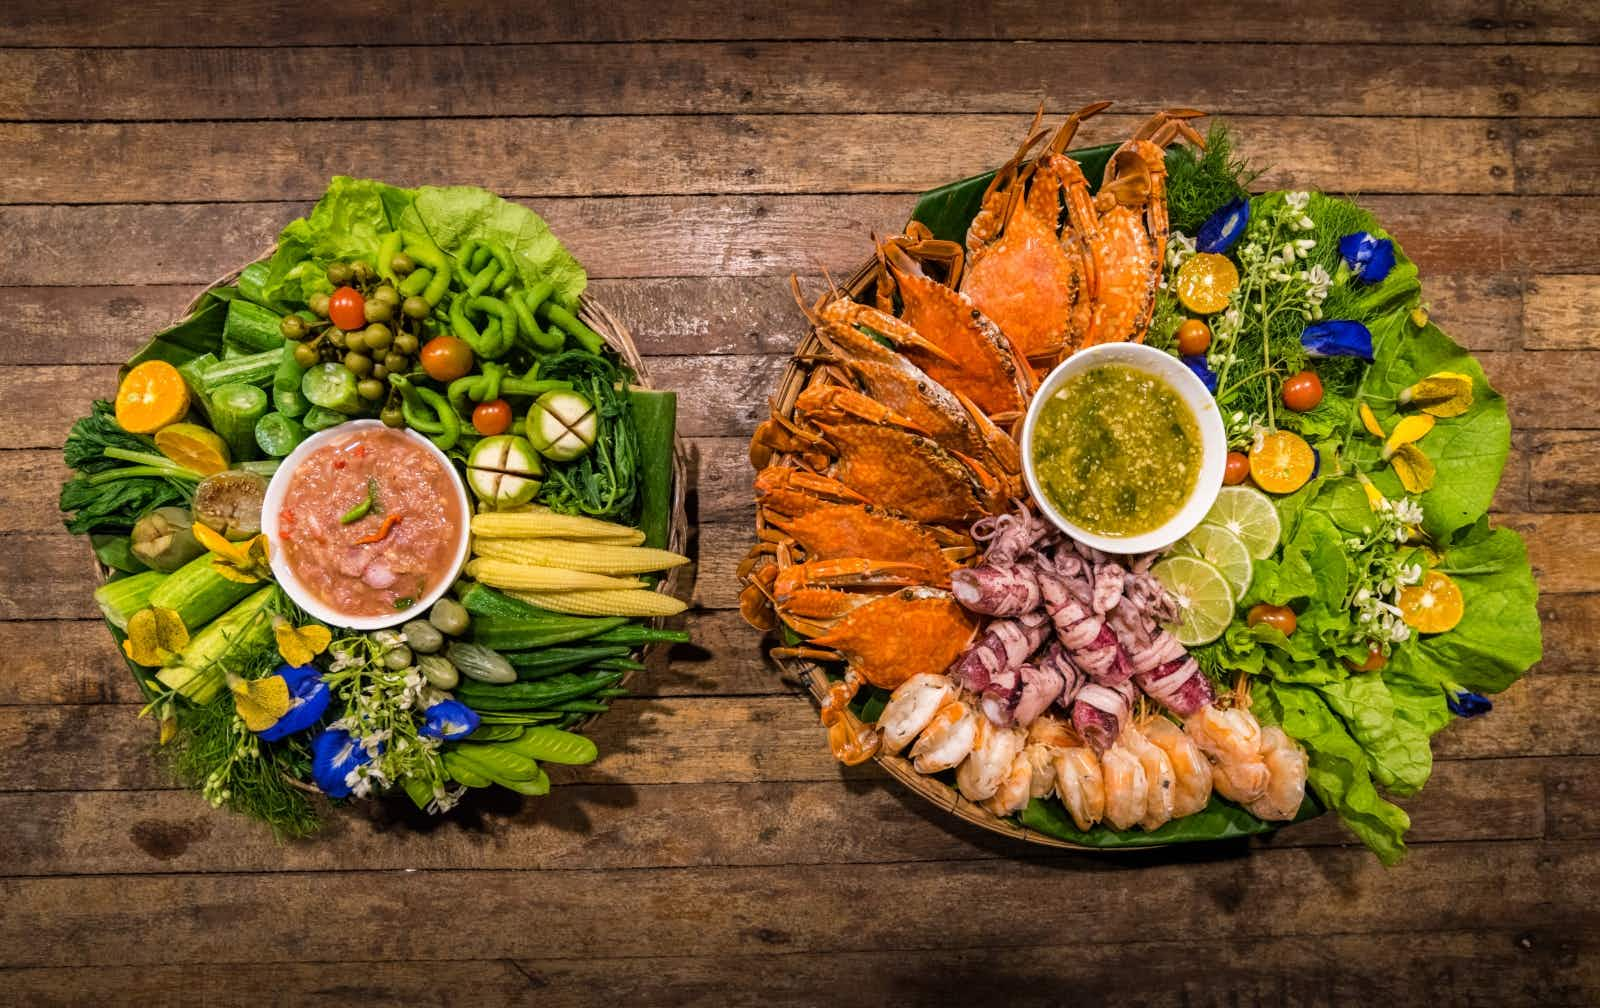 Thai cuisine has multicultural influences that can vary from province to province © Geet Theerawat / Shutterstock